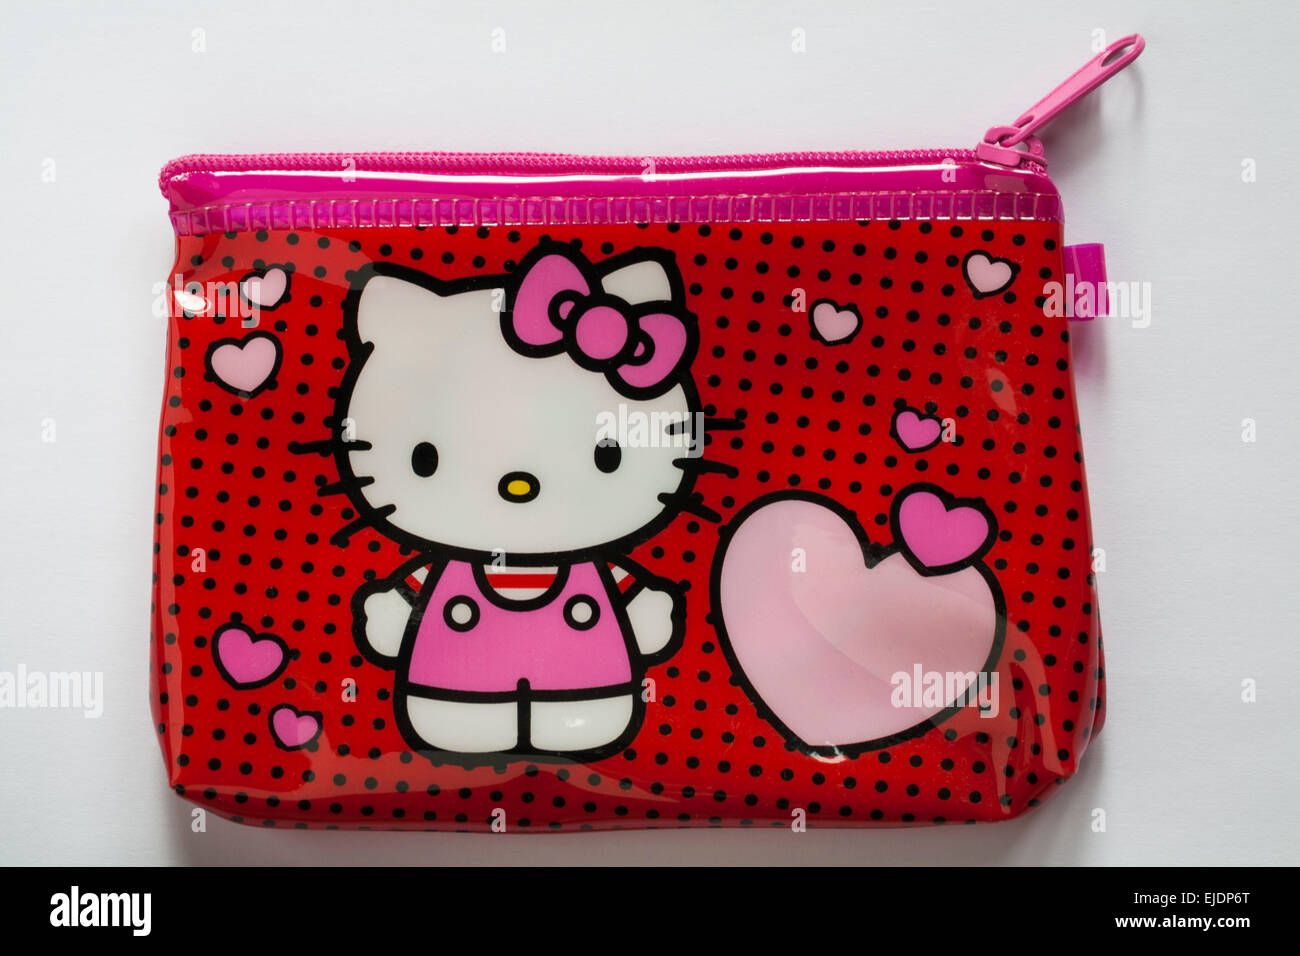 9d51920c377e1 Hello Kitty purse bag isolated on white background - purse for children  child girls - Stock